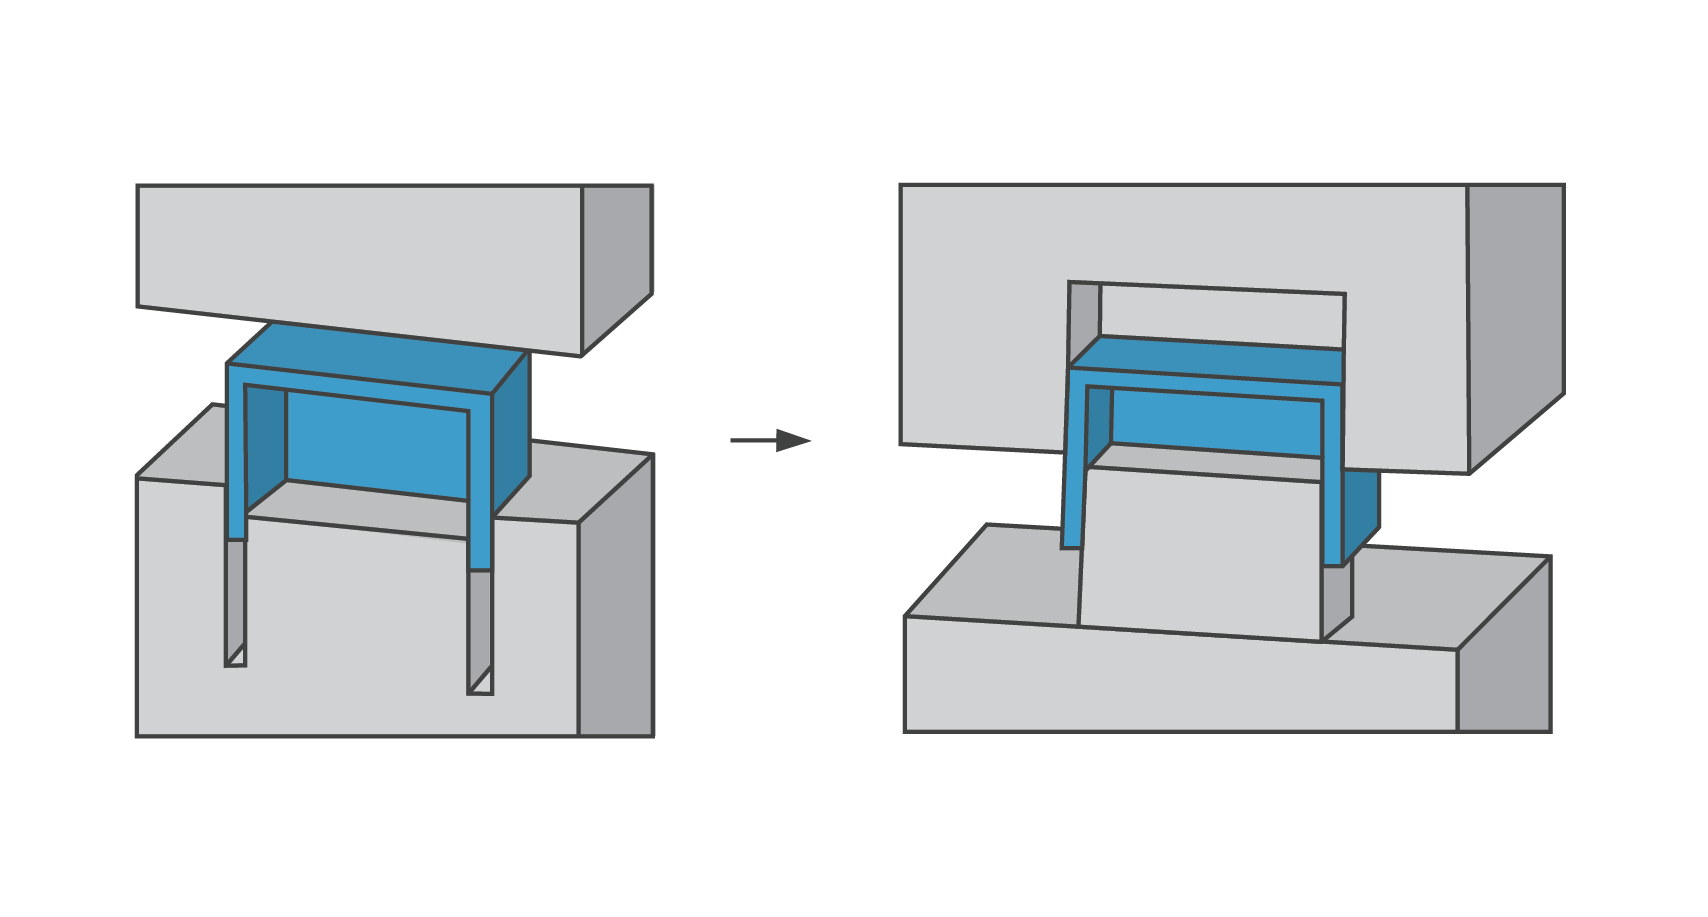 The deep-rib approach (left) shows a box designed with walls as ribs, resulting in higher a cost to machine and polish the mold cavity. With the core-cavity approach (right), the box allows features to be milled with a faster cutter, and is easier to polish. This saves you time and money.